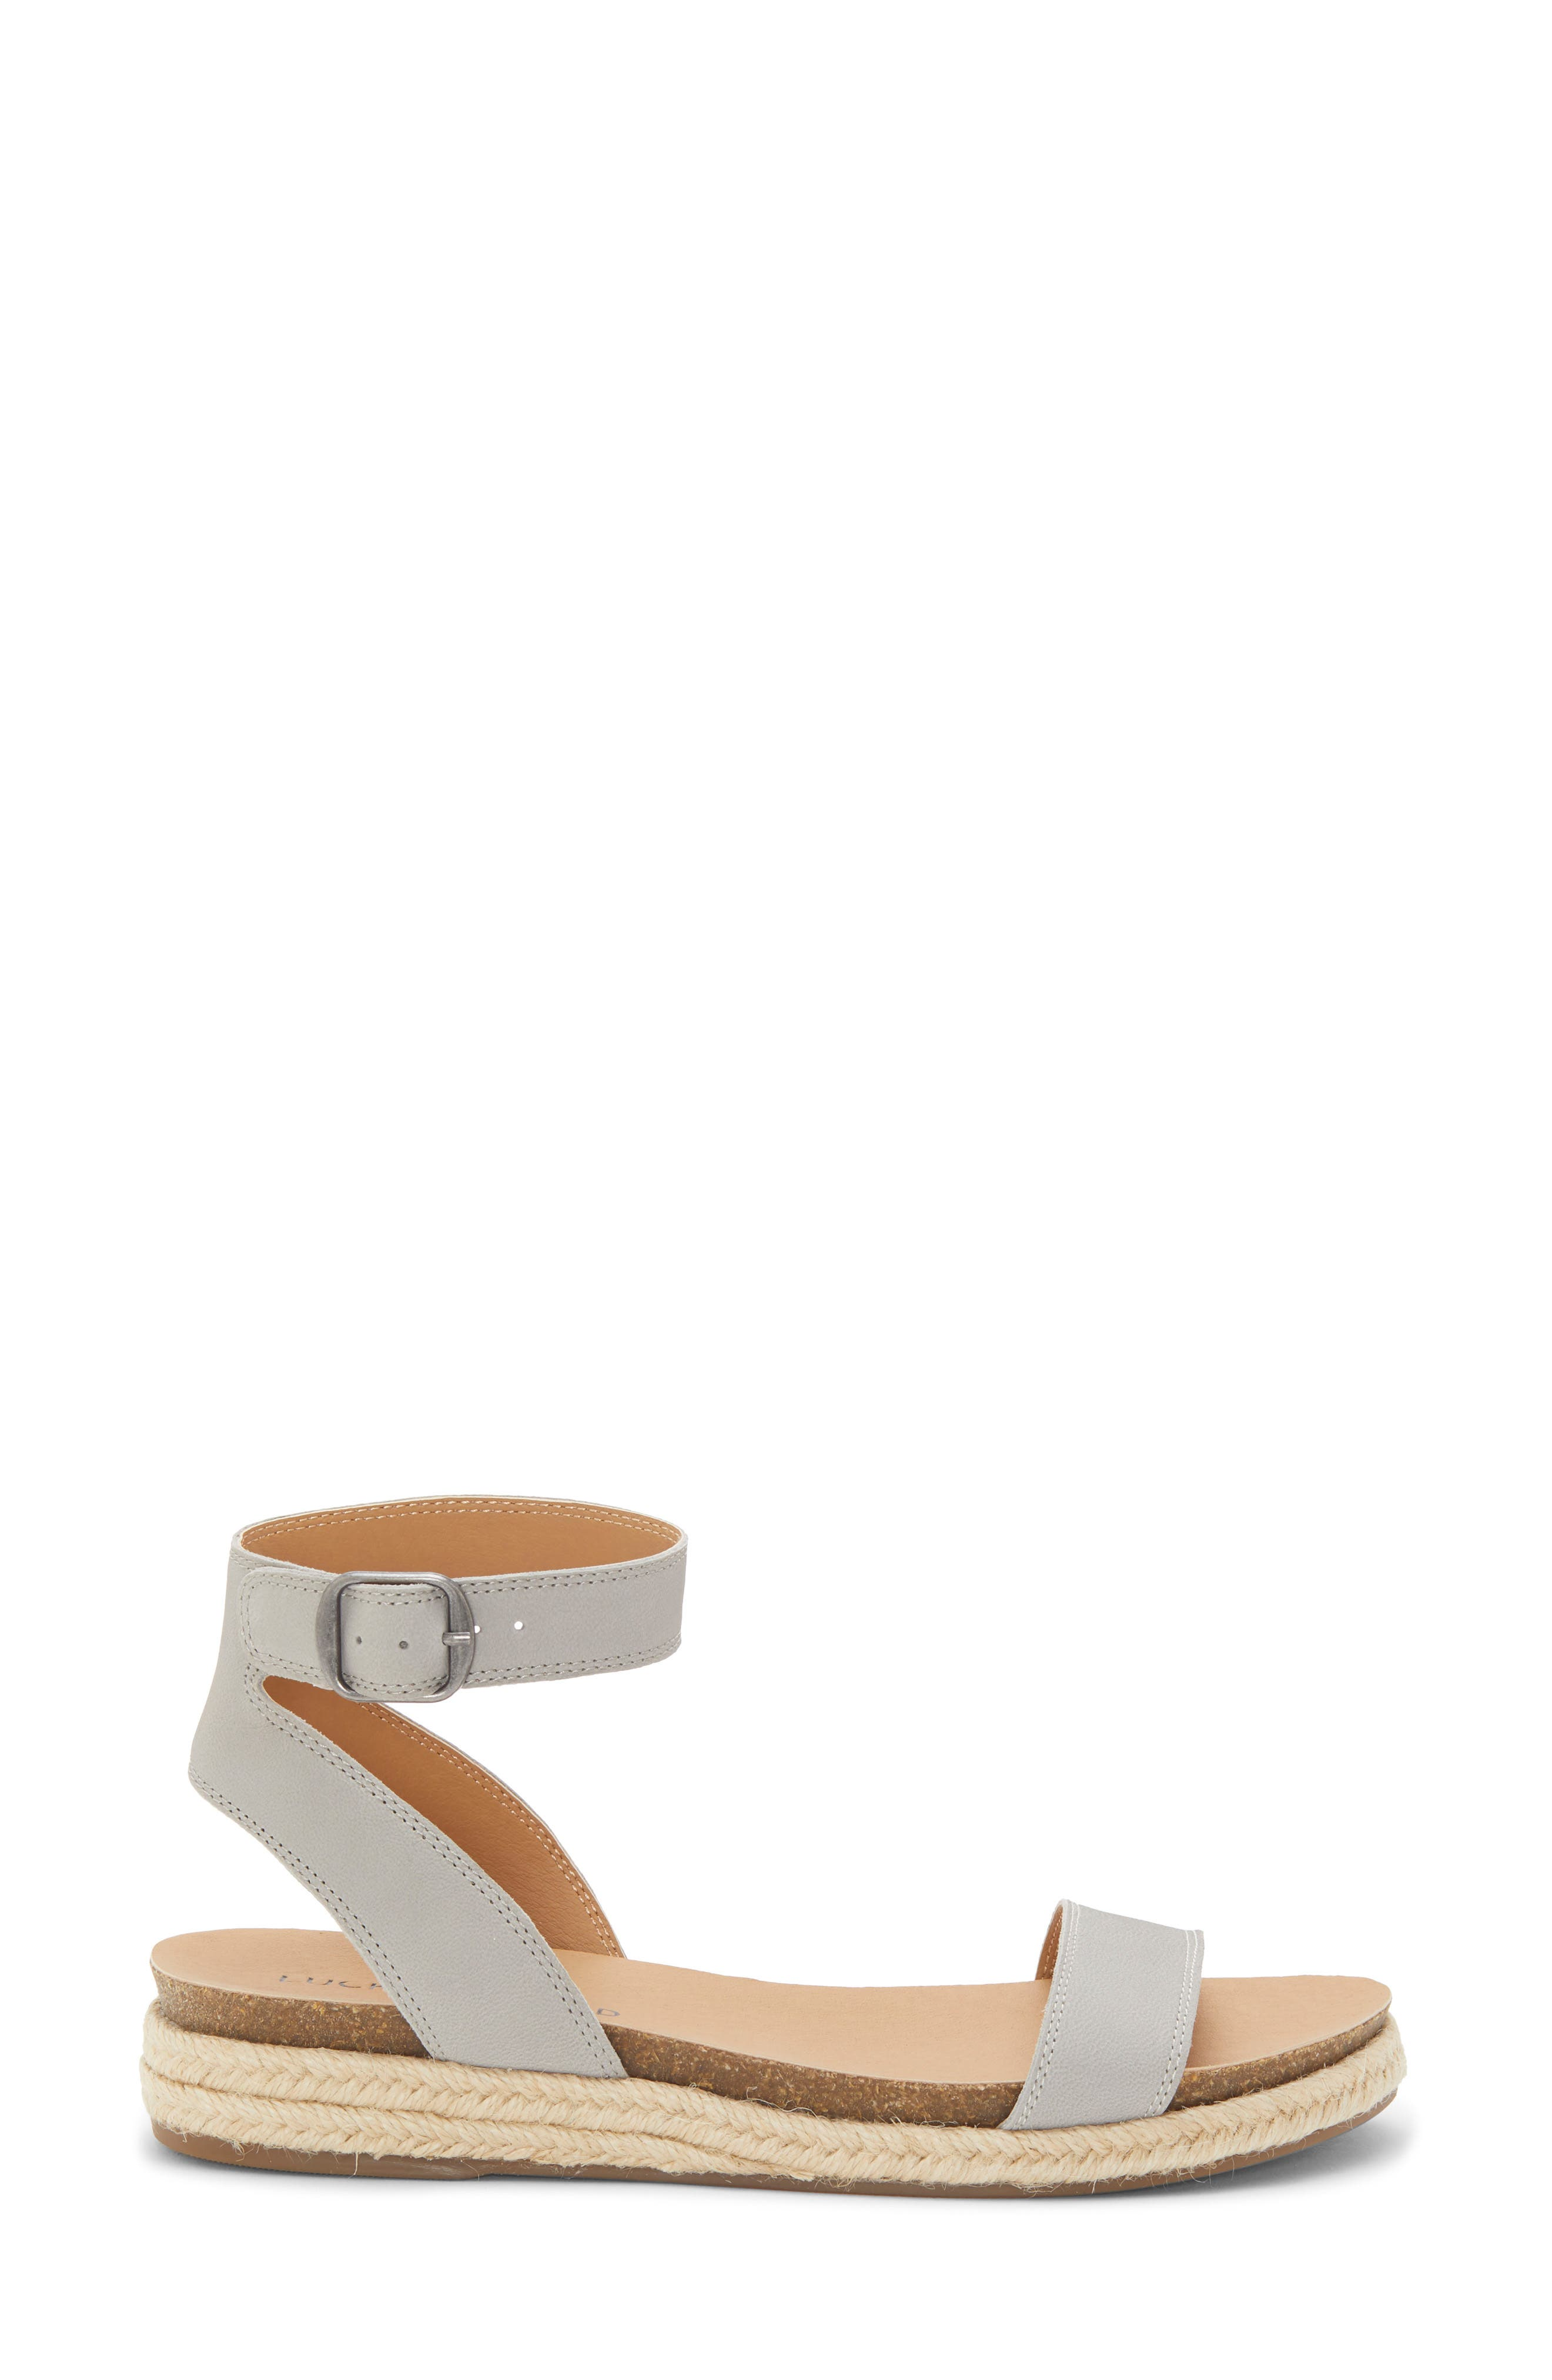 LUCKY BRAND, Garston Espadrille Sandal, Alternate thumbnail 3, color, CHINCHILLA LEATHER